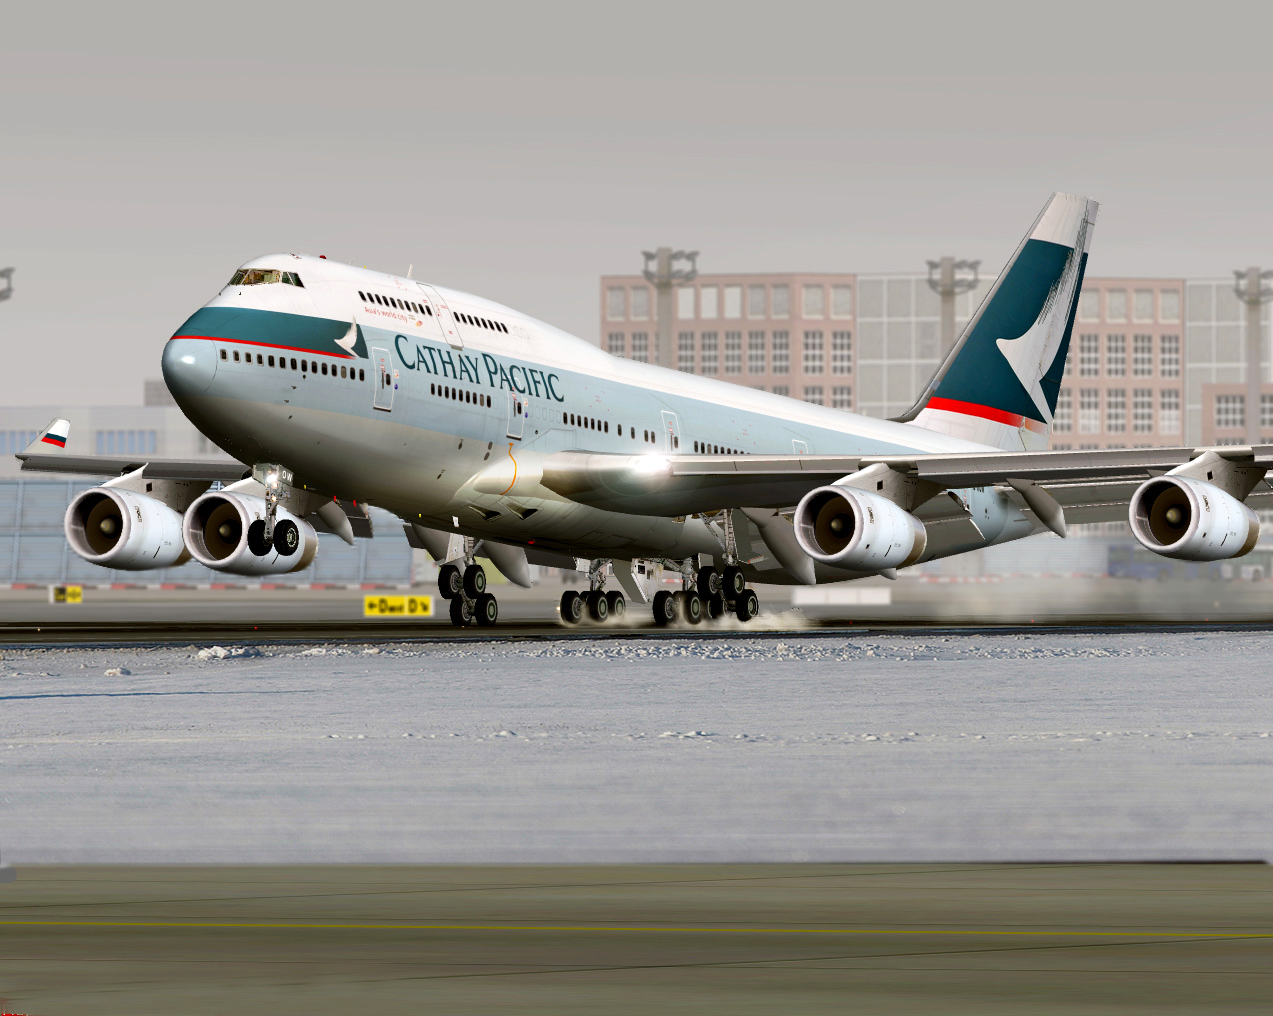 cathay pacific airlines Cathay pacific cargo provide a range of air cargo solutions, including animal, pharmaceutial, secure and dangerous goods - to major cities worldwide.